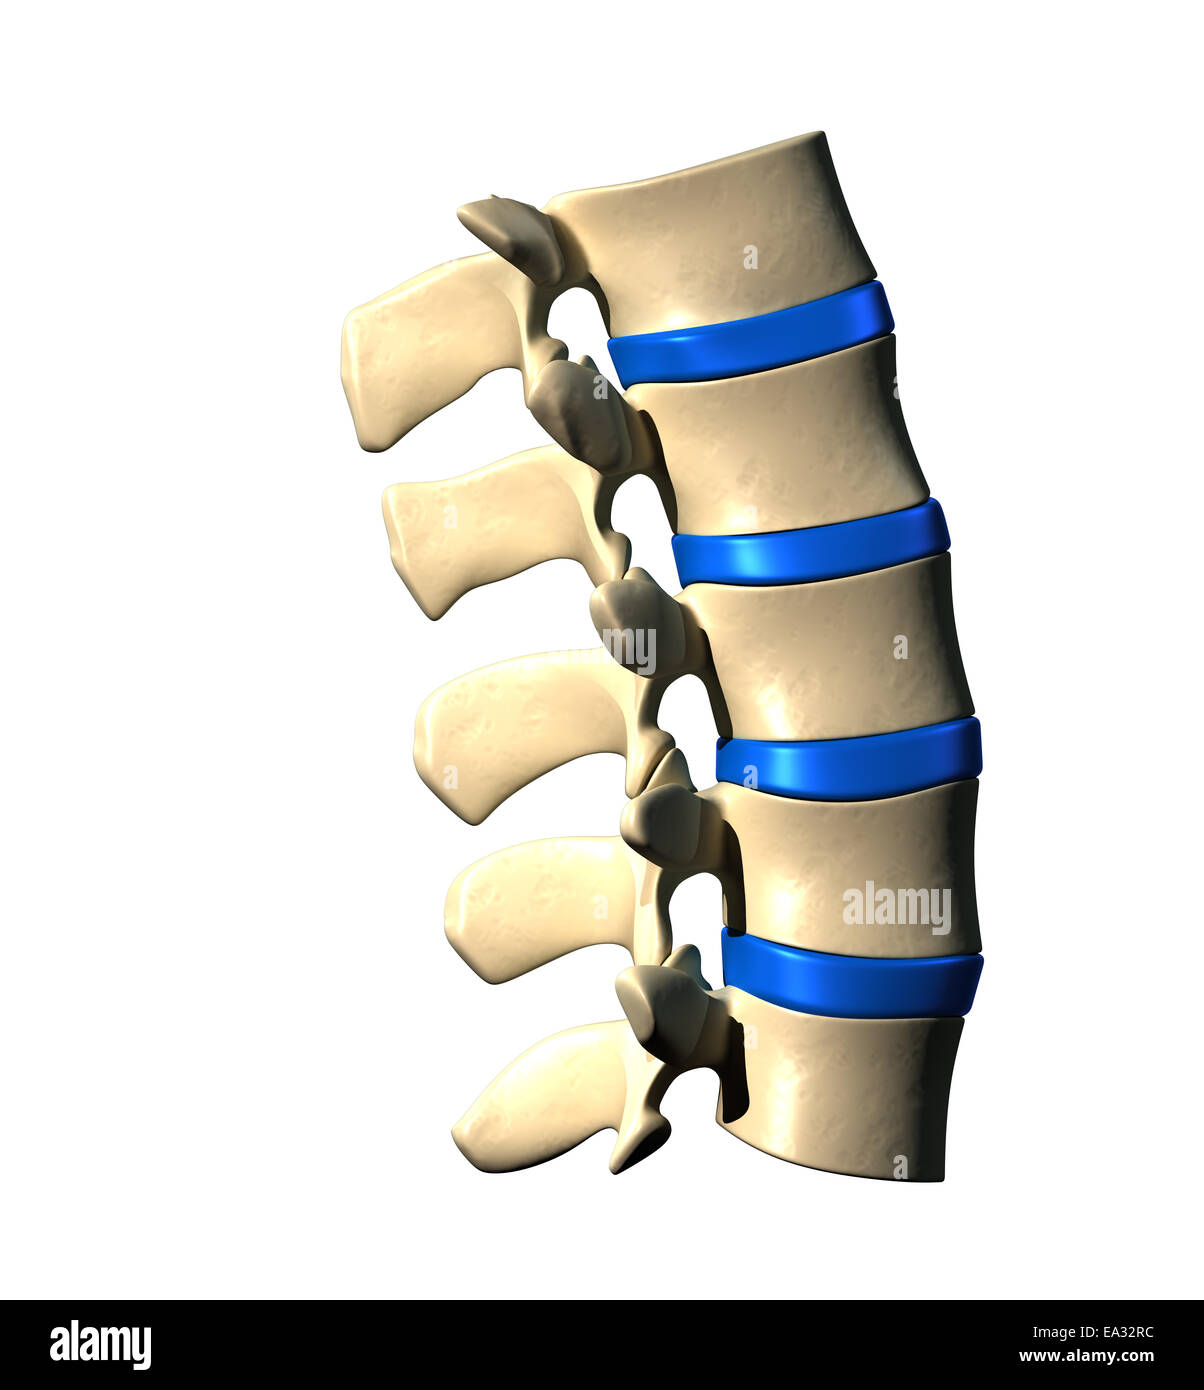 Lumbar Spine - Lateral view / Side view - Stock Image